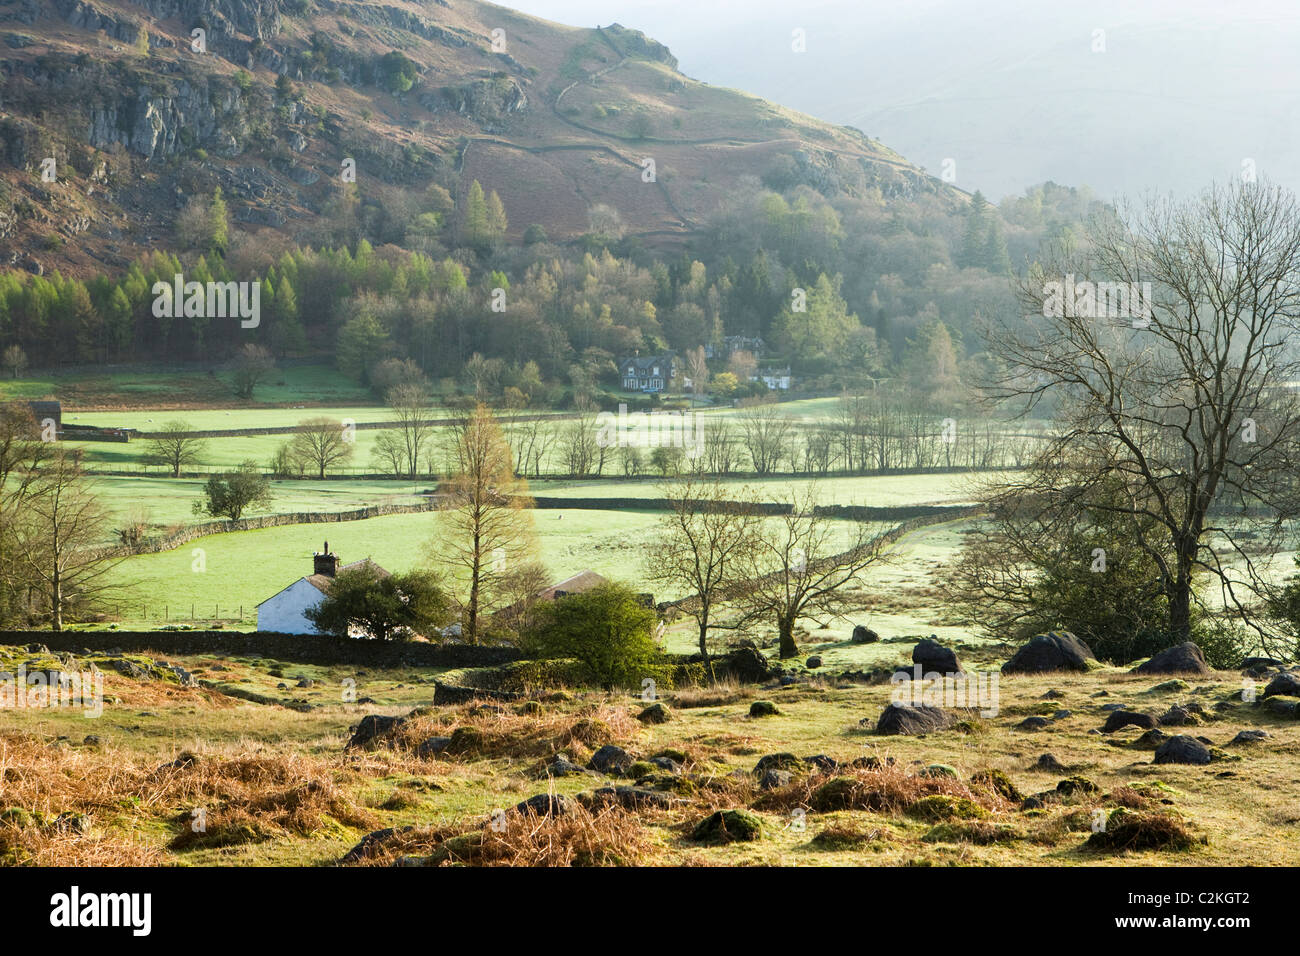 A comienzos de la primavera del amanecer cerca de Grasmere, Lake District National Park, Cumbria, Reino Unido Imagen De Stock